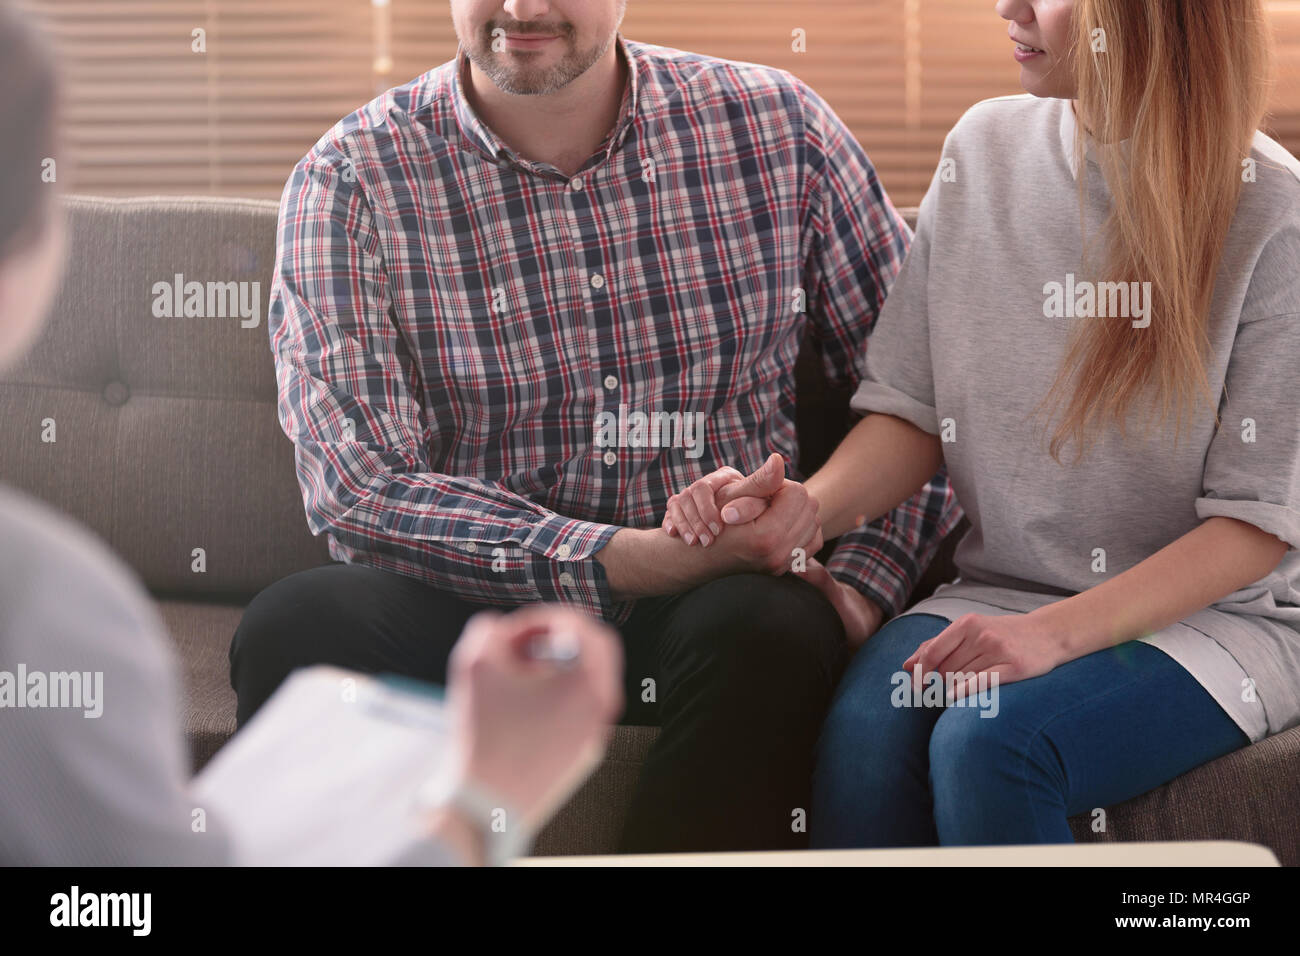 Close-up of woman and man holding hands on a couch during a psychotherapy session. Couples therapy concept - Stock Image